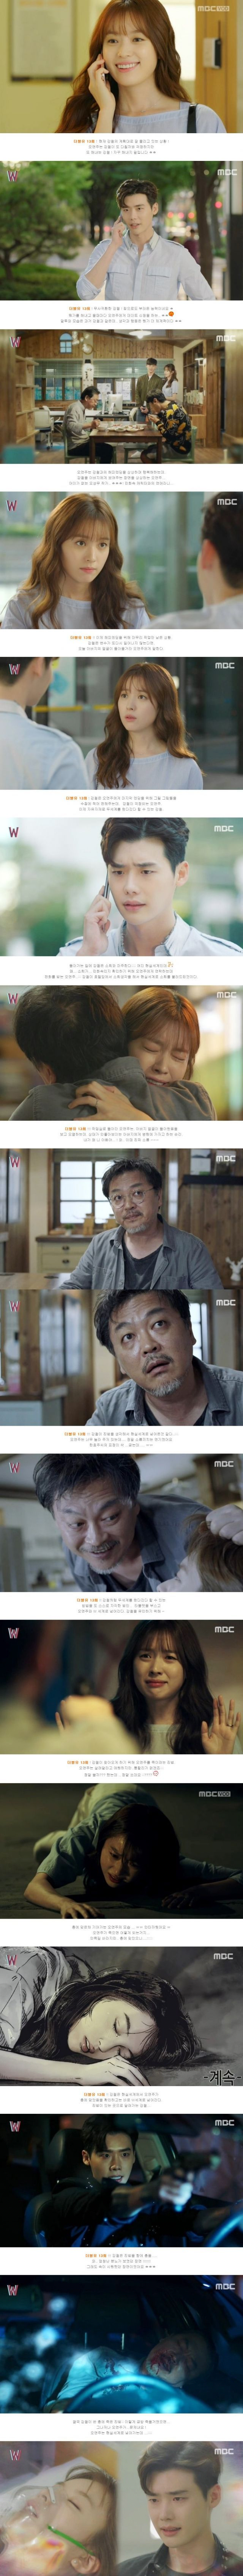 Added episode 13 captures for the Korean drama 'W'.